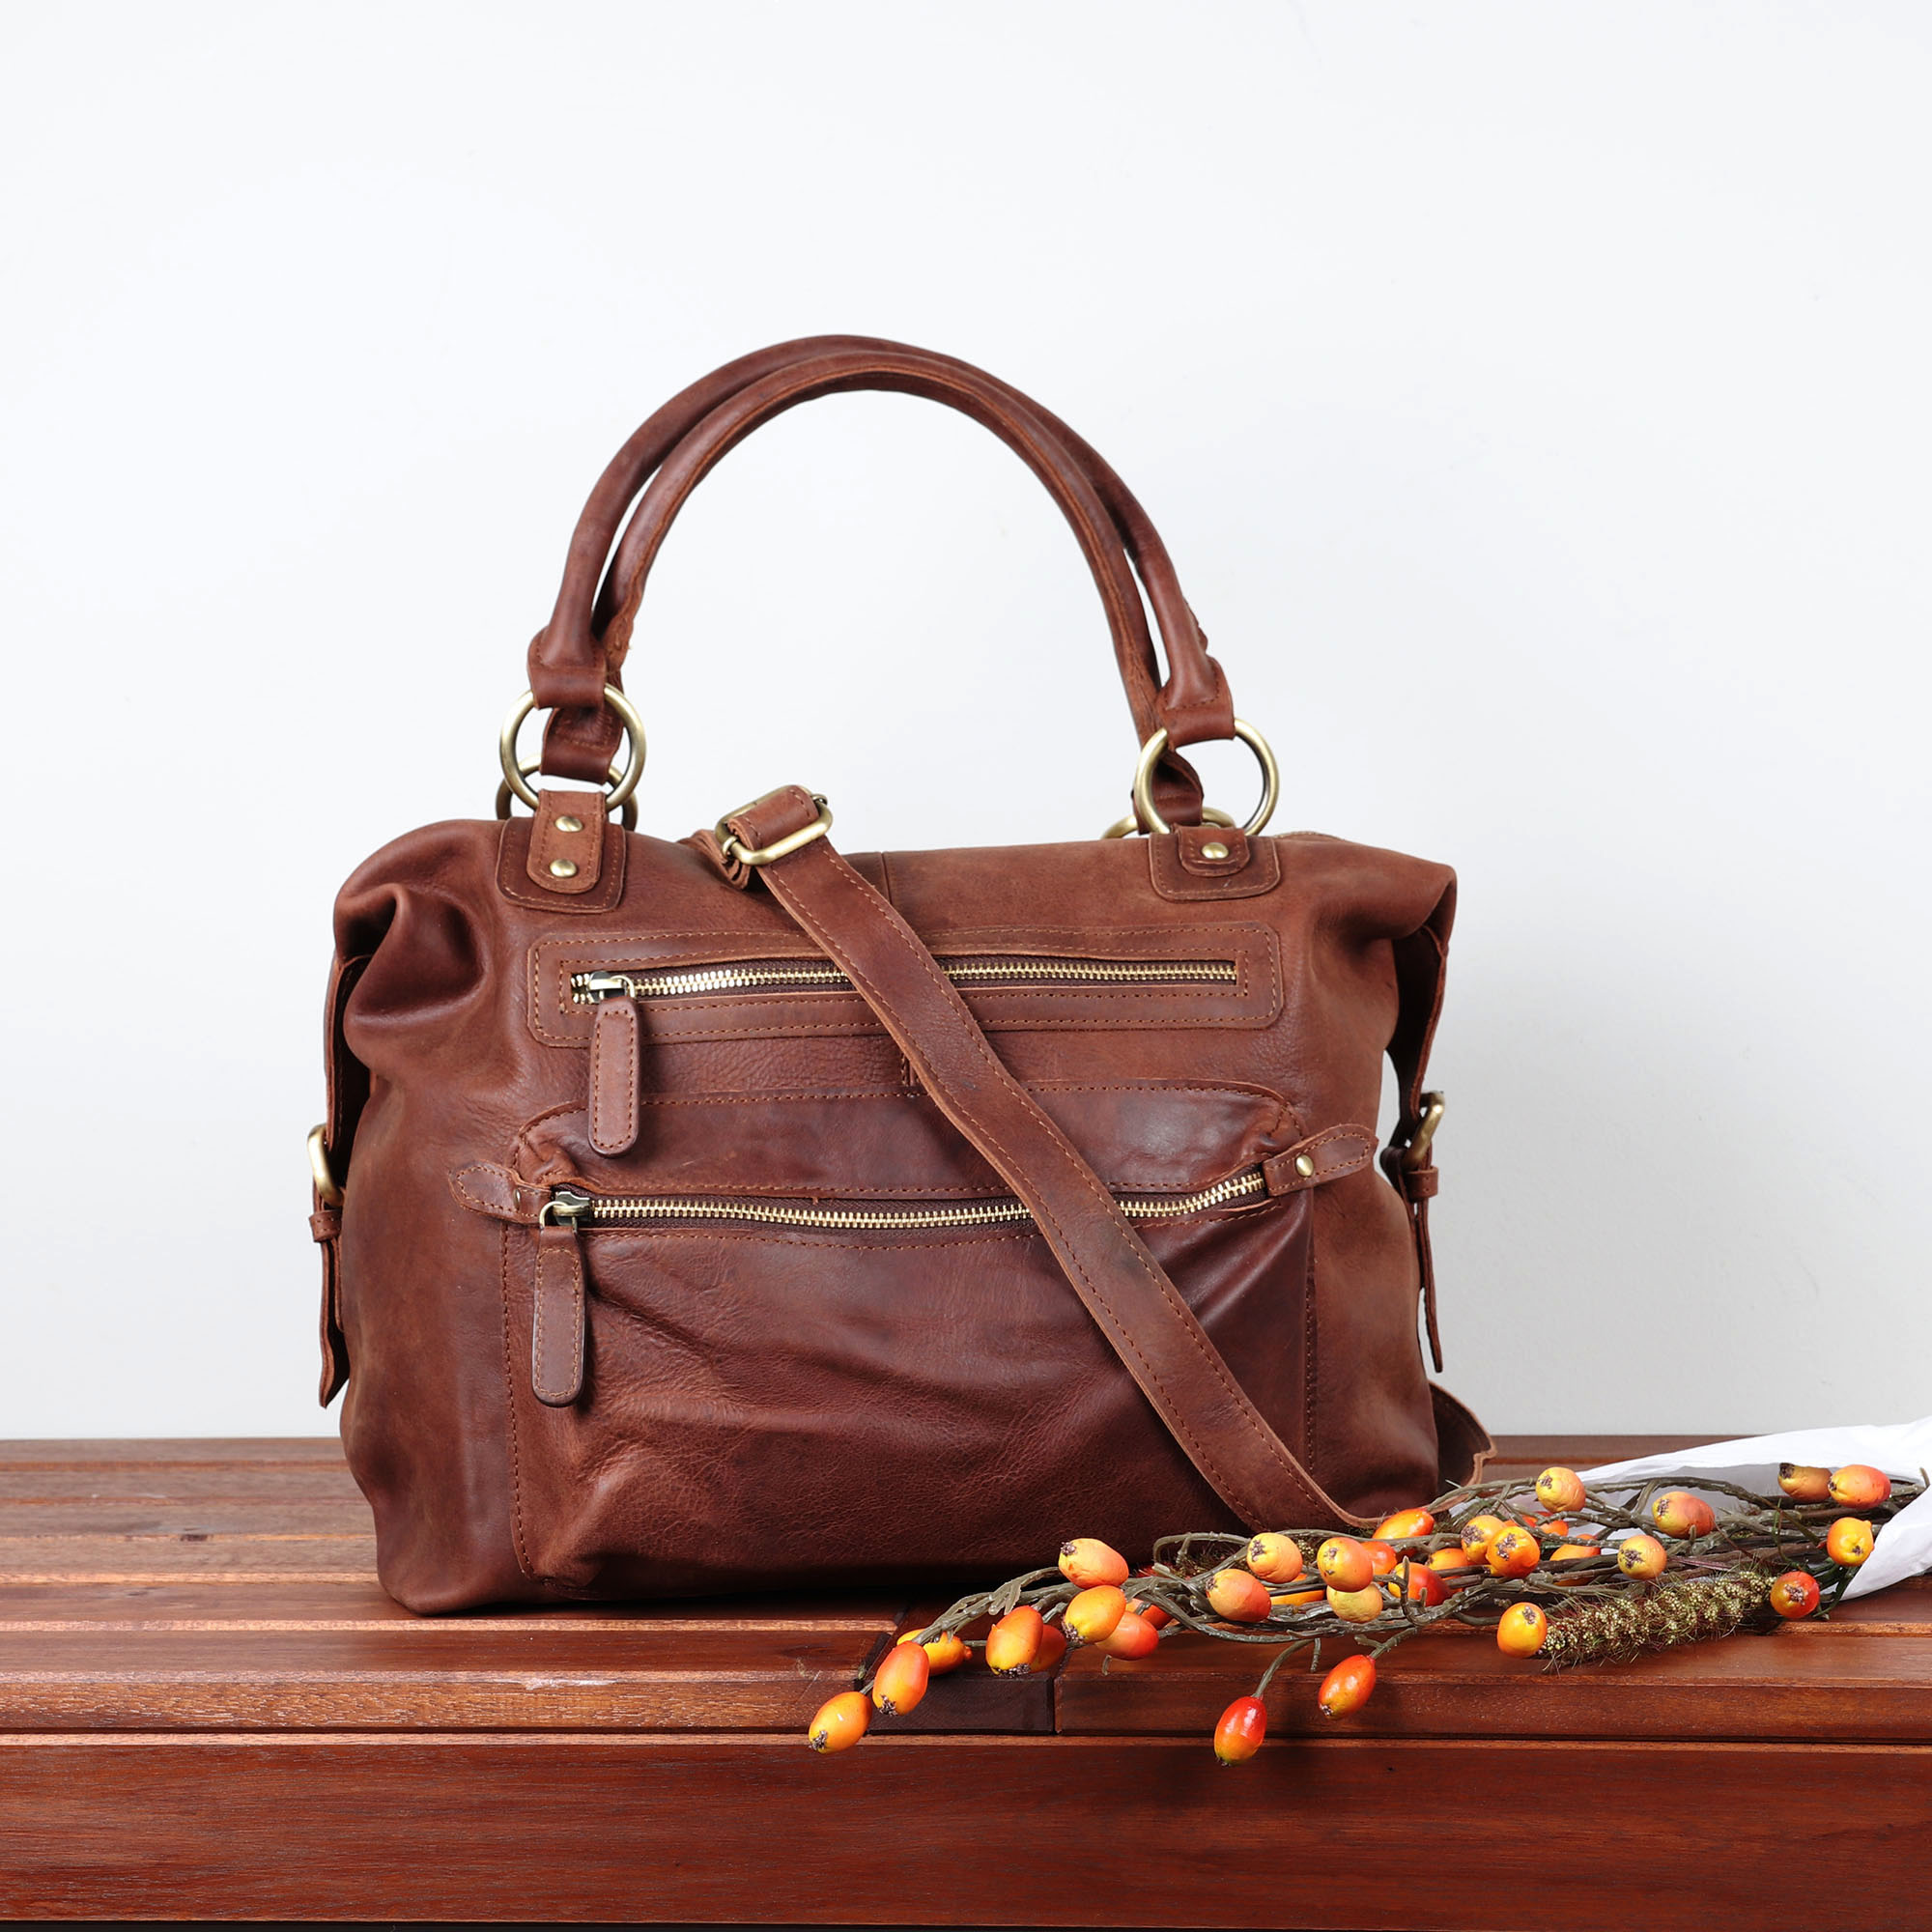 Handmade Leather Bags for Women   The Leather Store 513be2782de5d